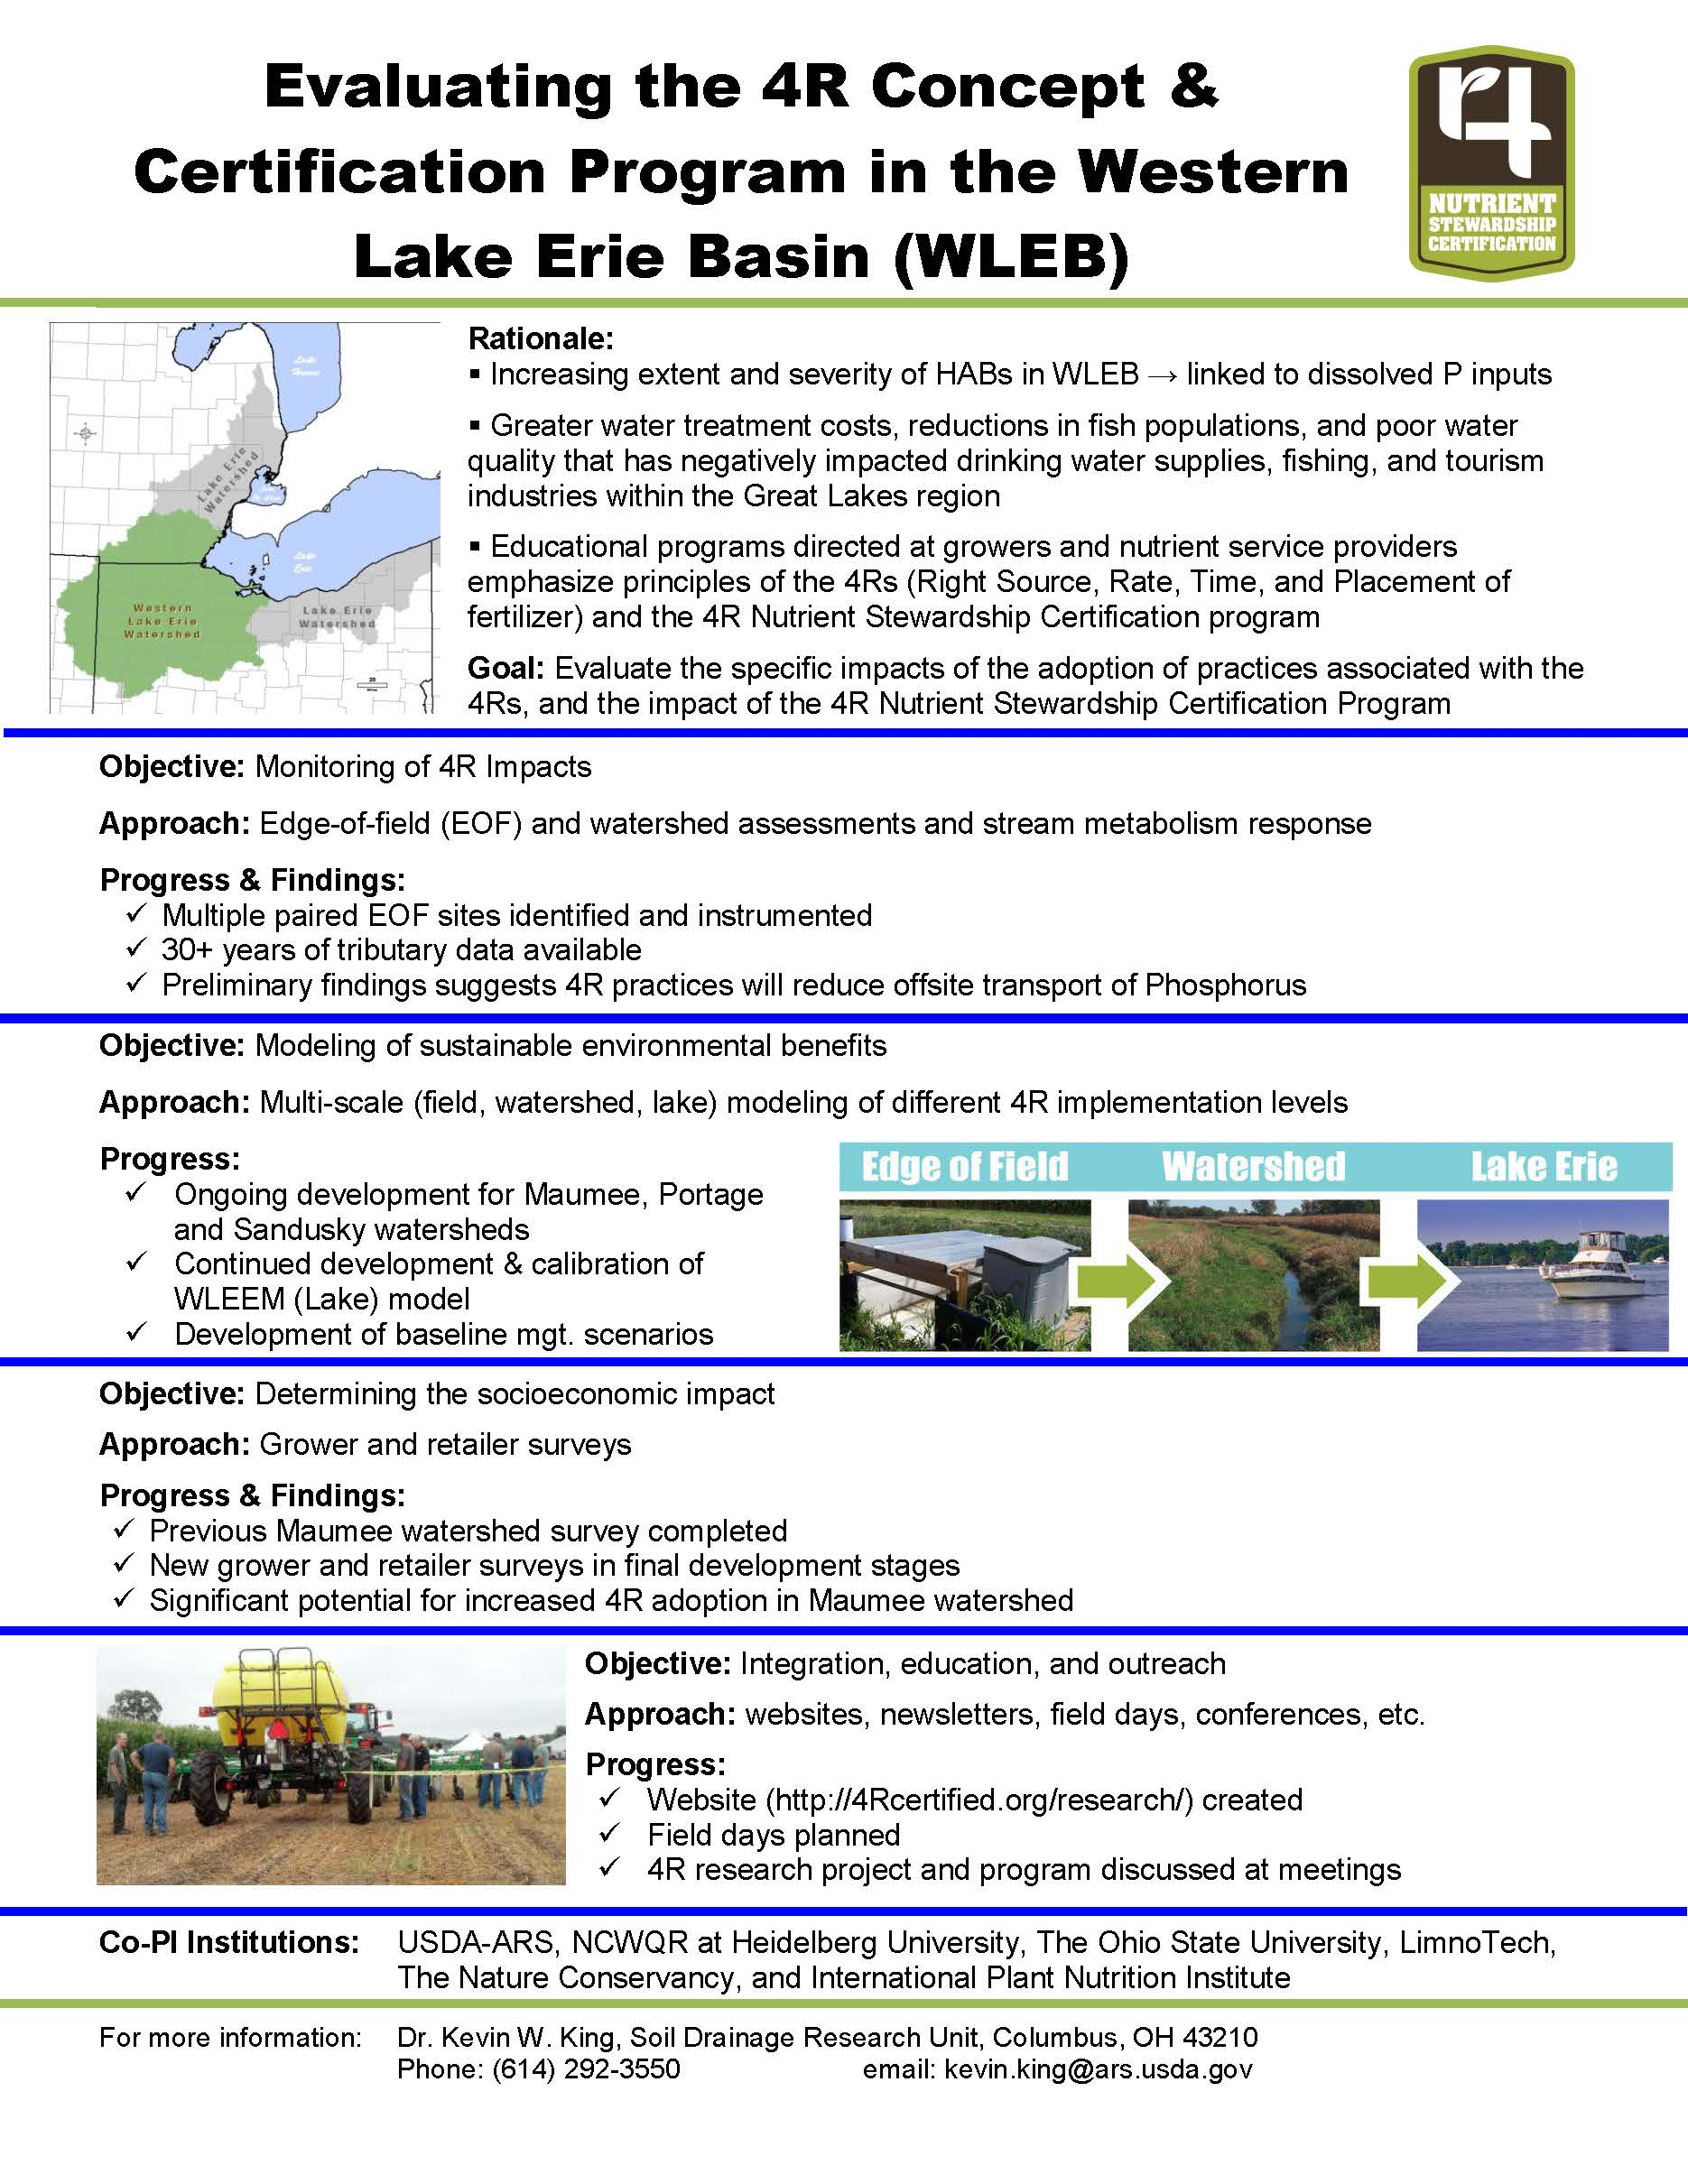 Research 4r nutrient stewardship certification click here to download evaluating the 4r concept certification program in the wleb in pdf format xflitez Gallery